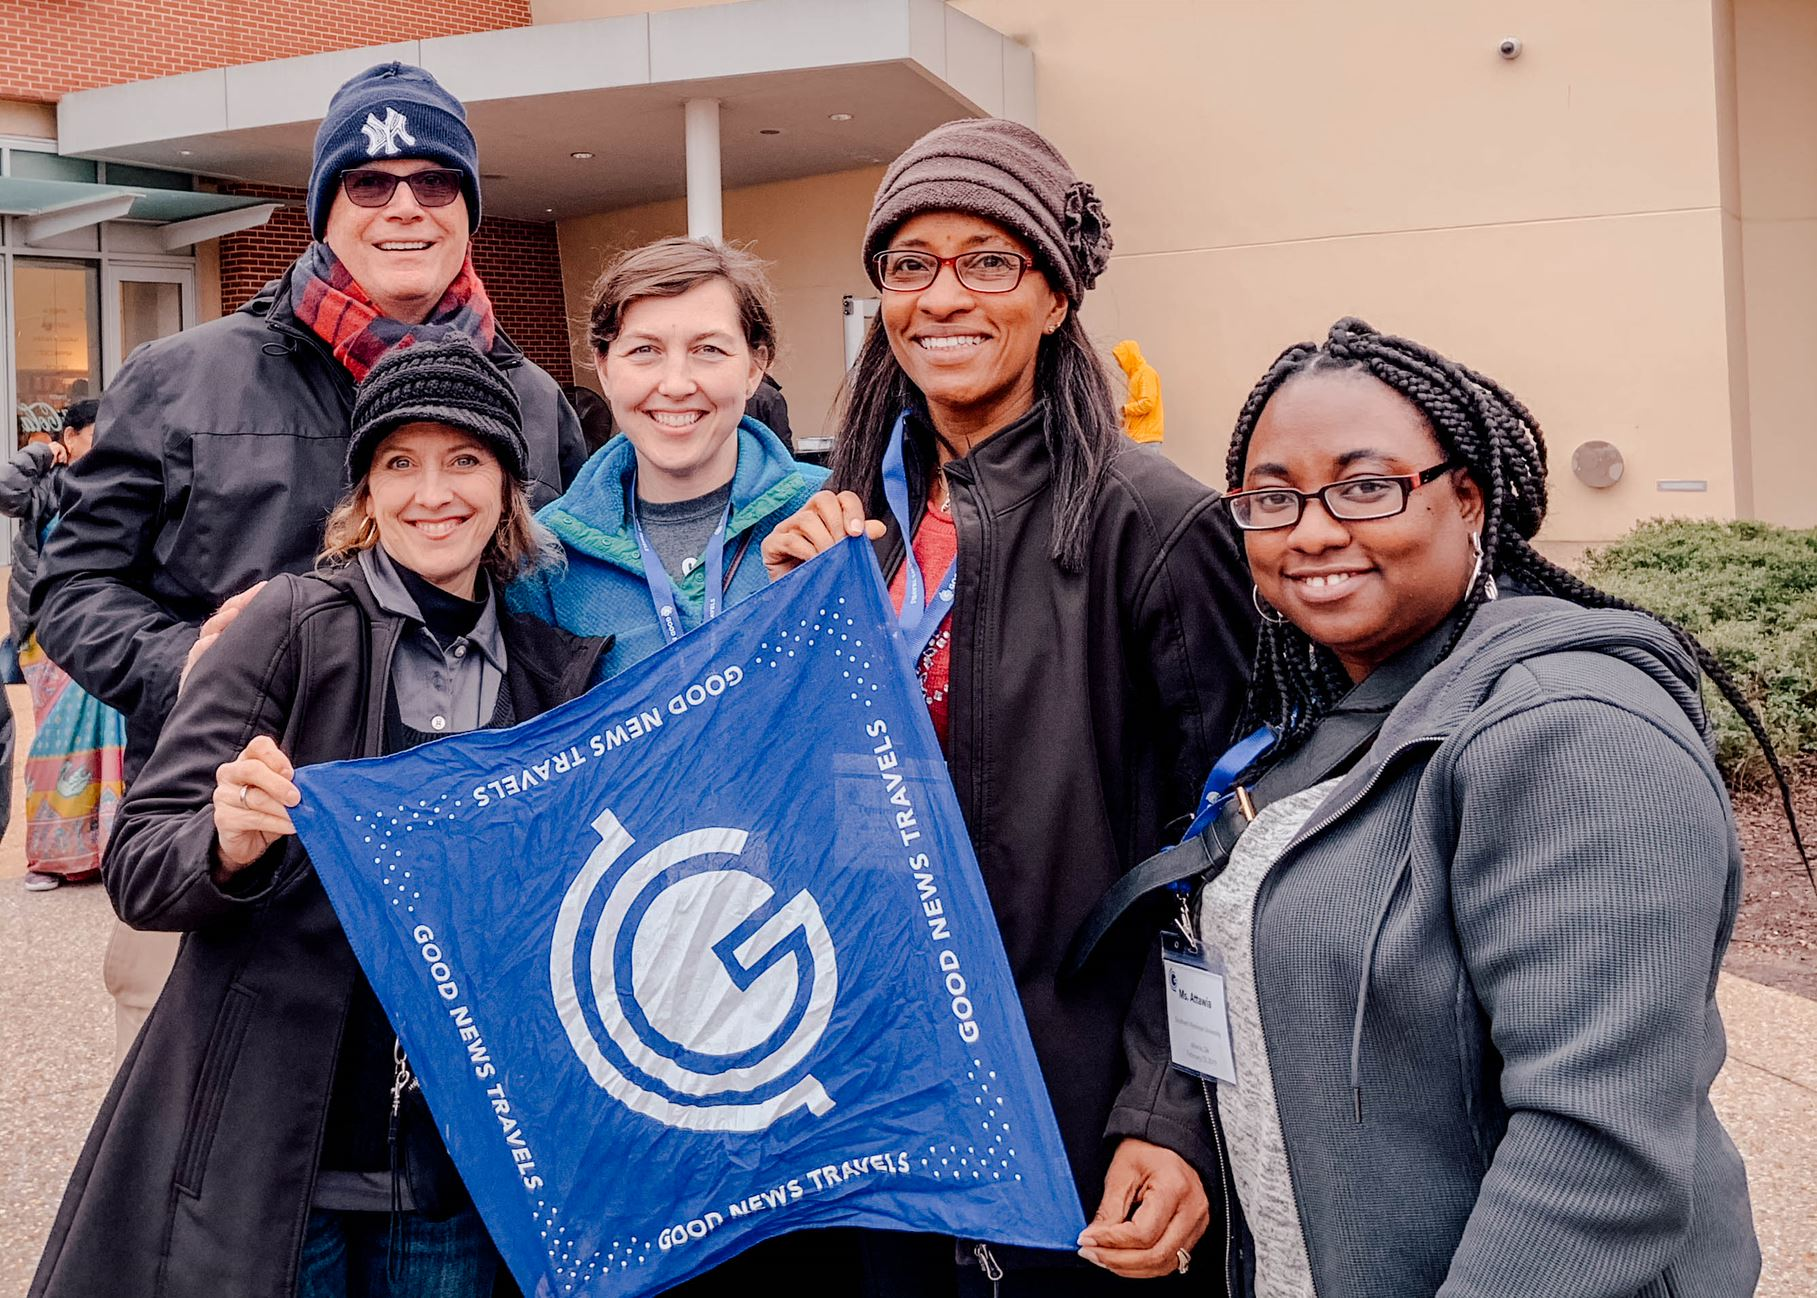 Group holding the Good News Travels flag